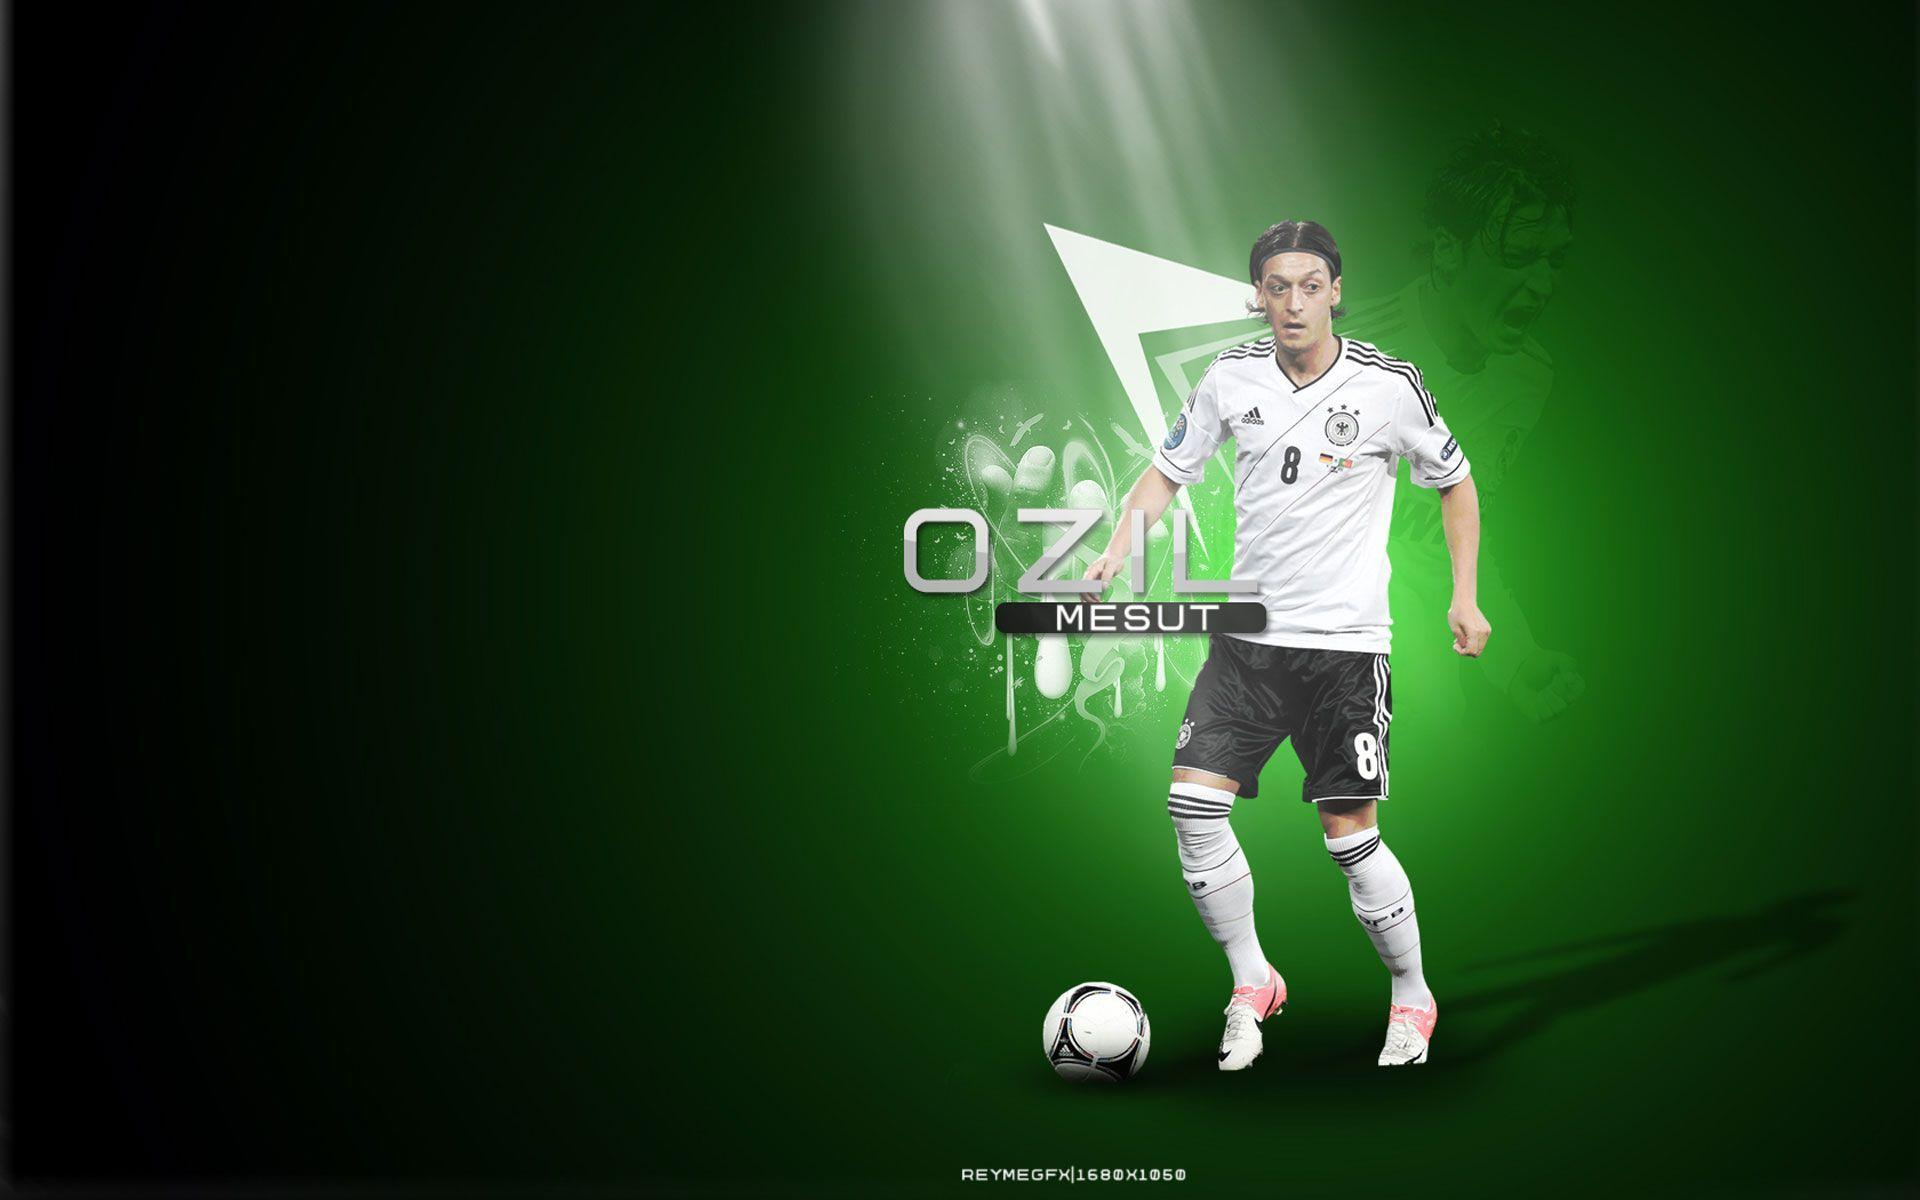 Mesut Ozil Wallpapers Wallpapers